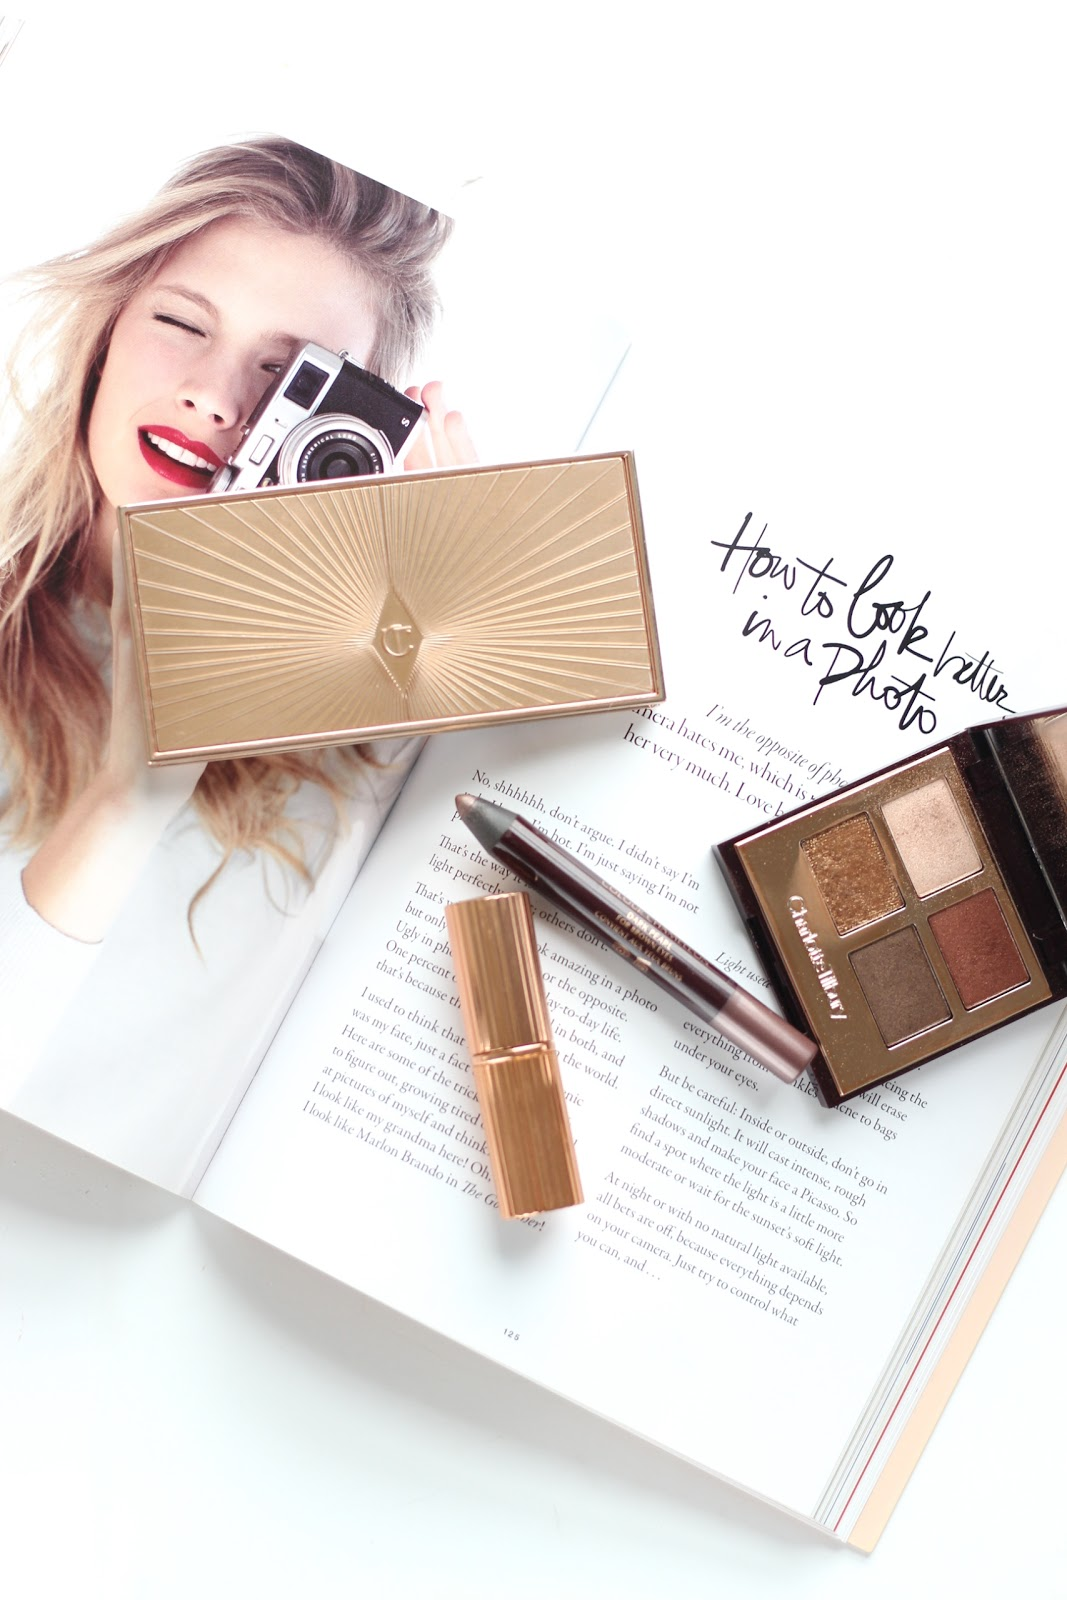 Charlotte Tilbury Products Worth The Splurge.